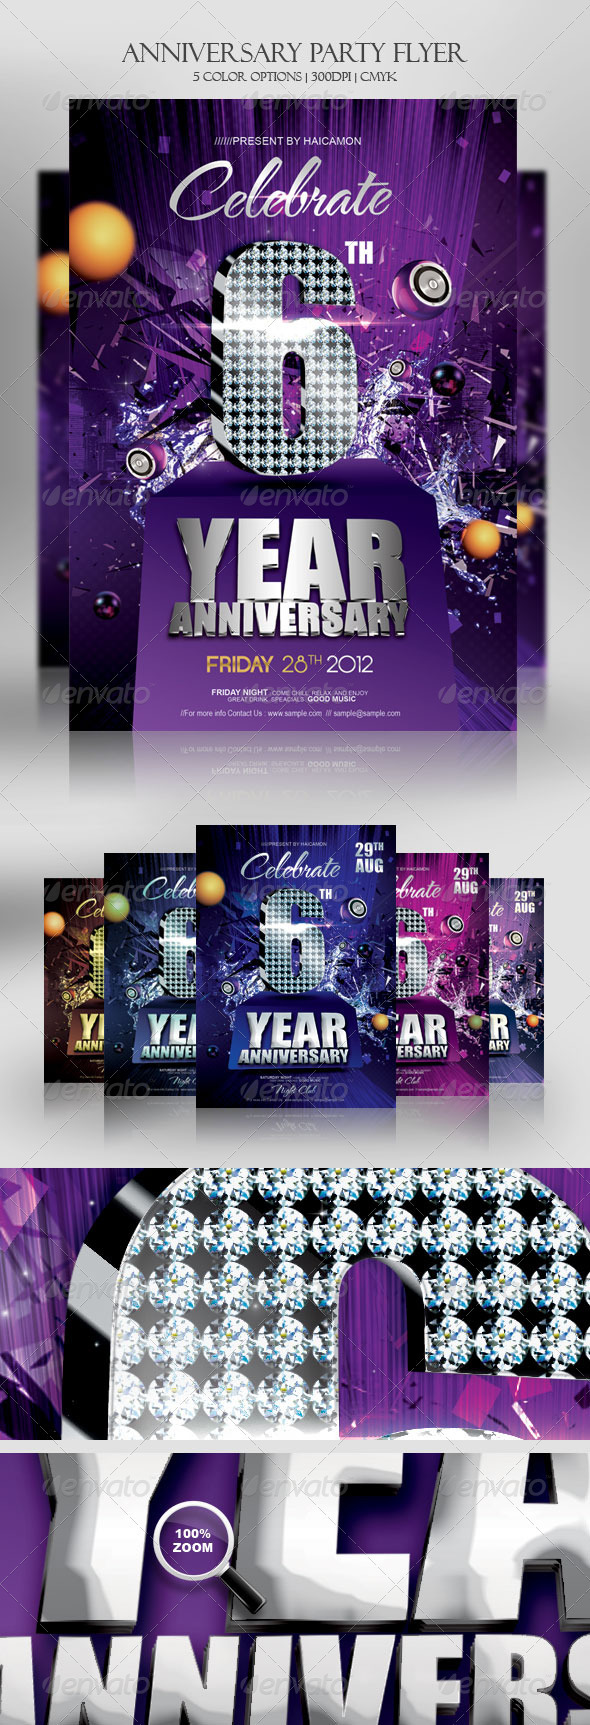 Anniversary Party Invitations Flyer - Miscellaneous Events